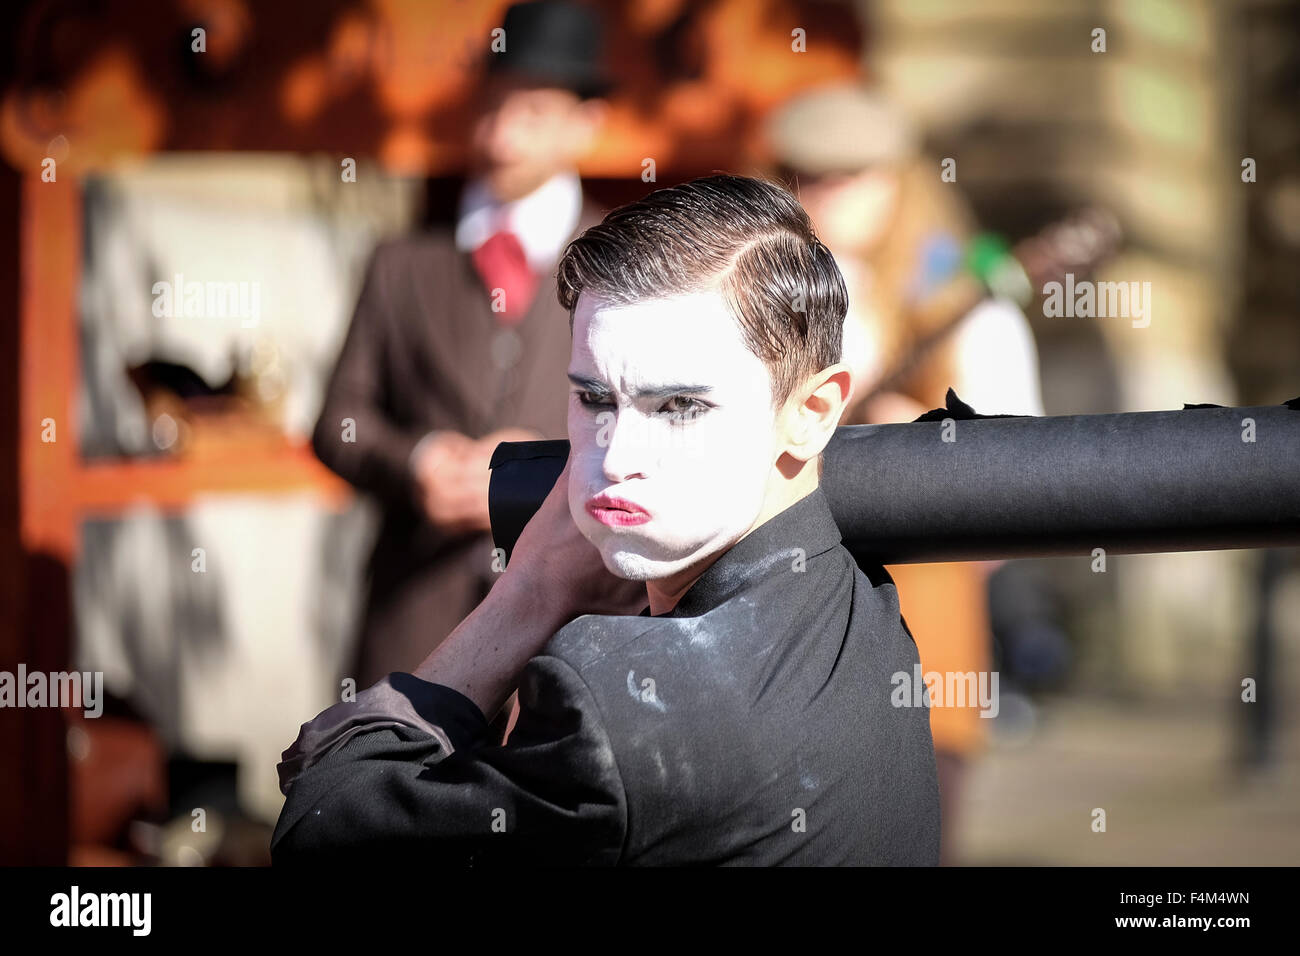 Mime artist puffing out cheeks while 'working' - Stock Image